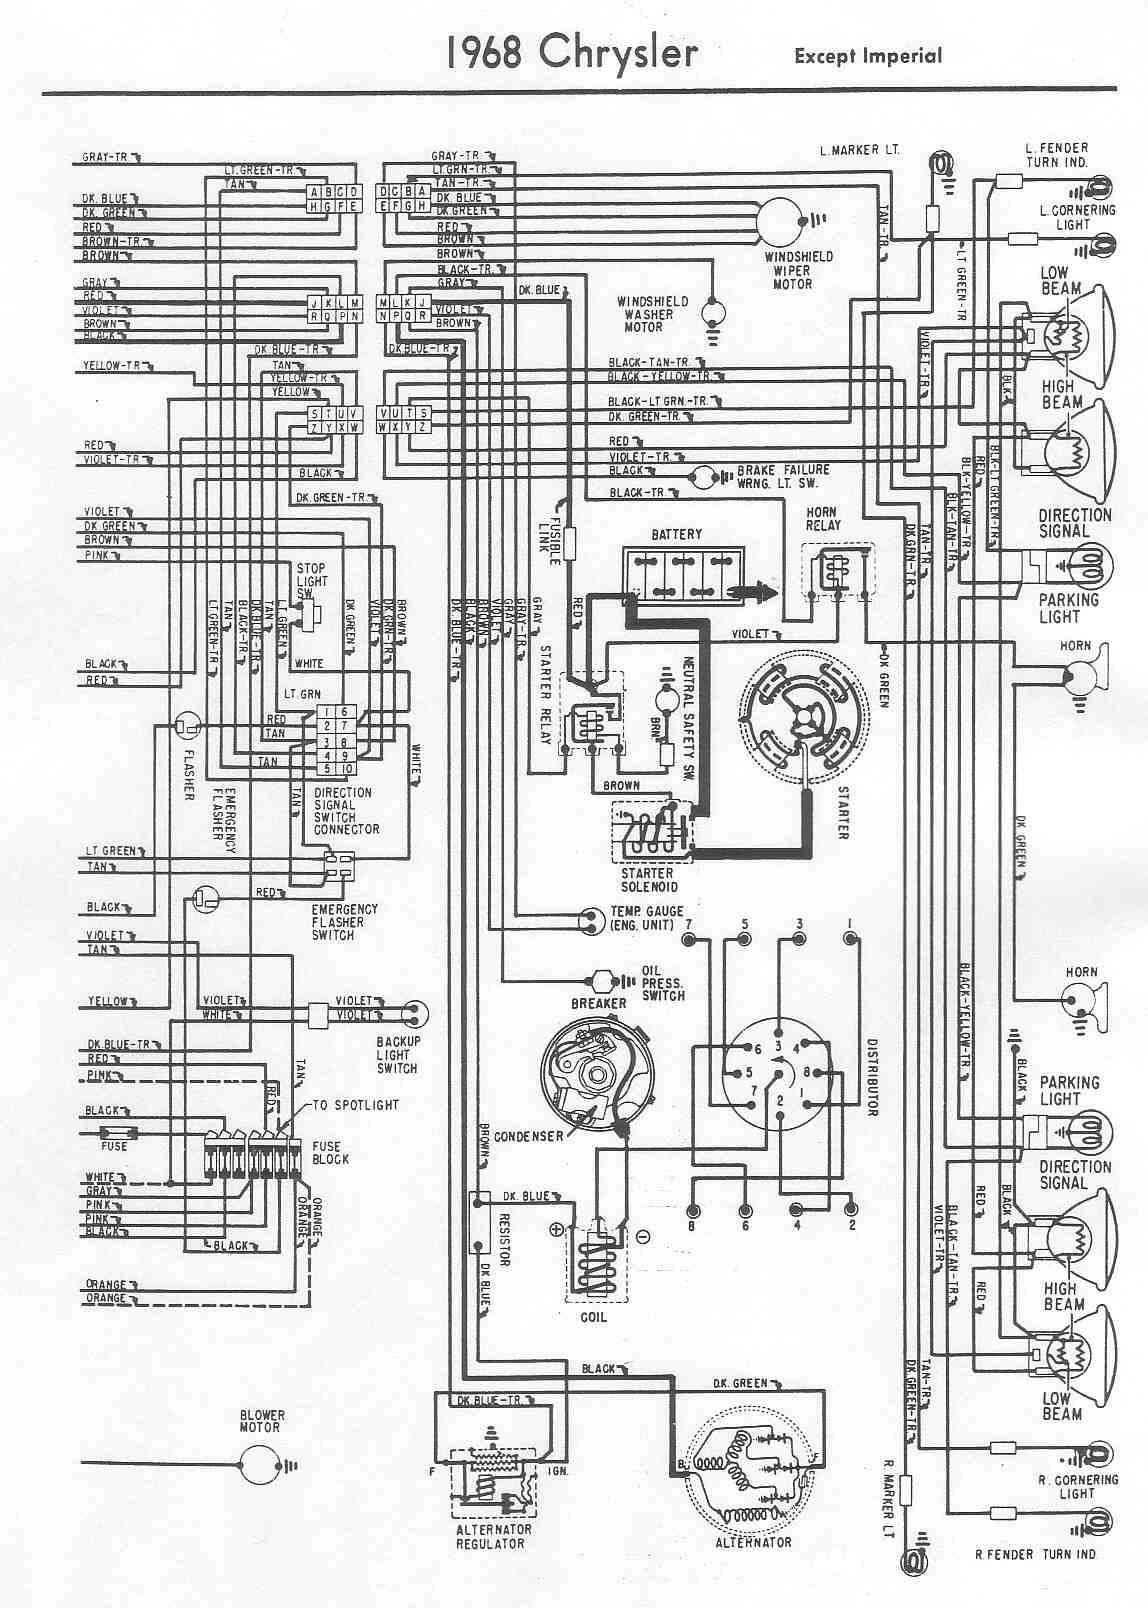 chrysler car manuals wiring diagrams pdf fault codes rh automotive manuals net 1978 Chrysler Wiring Diagram for the Distrib 1978 Chrysler Wiring Diagram for the Distrib